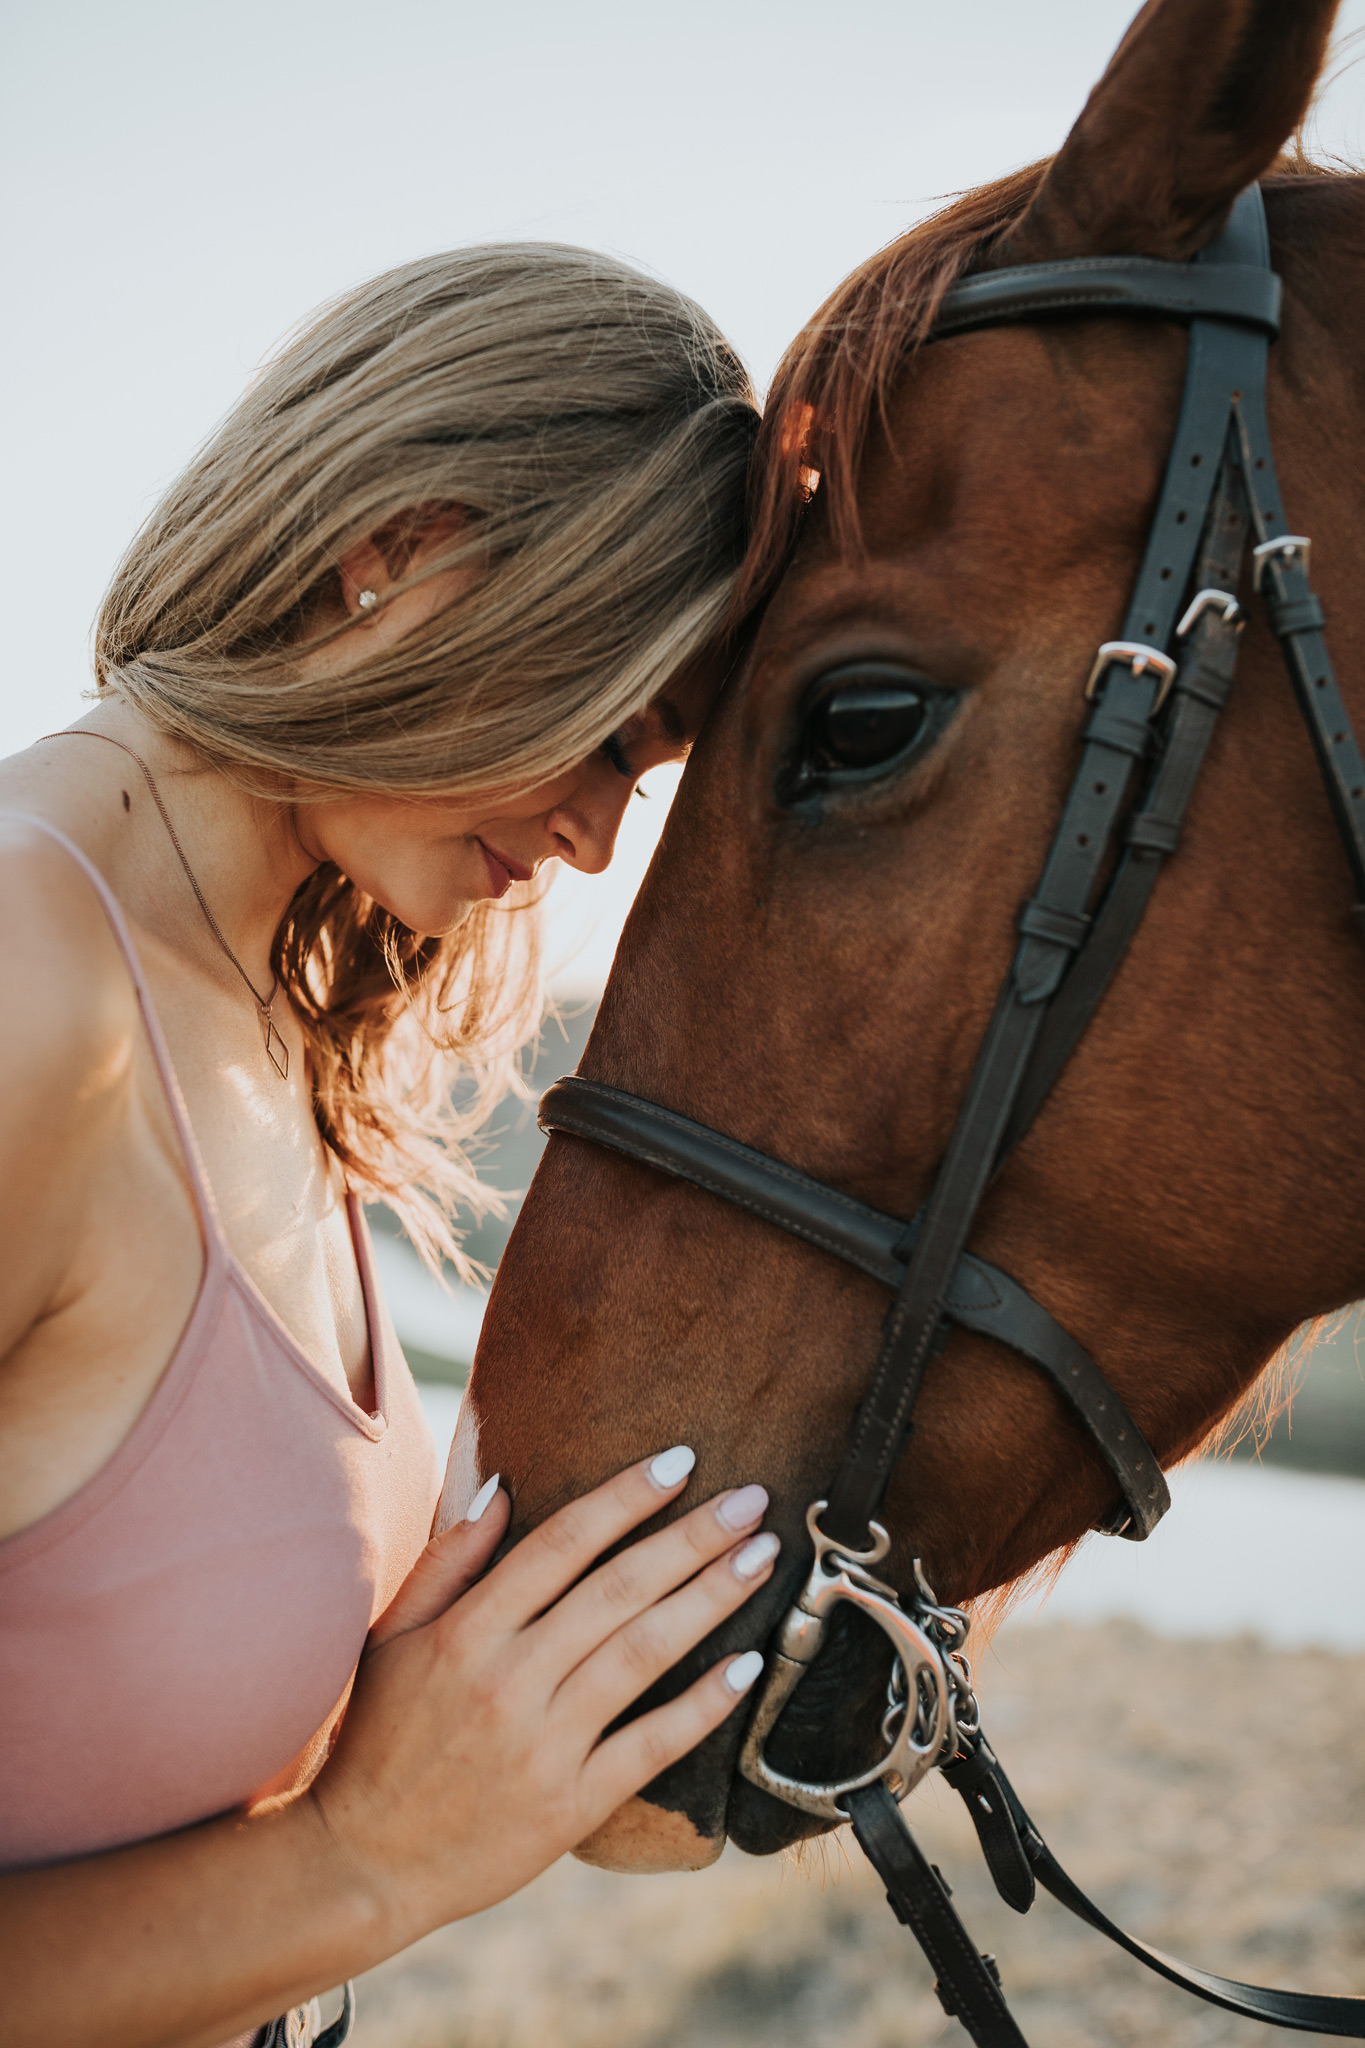 girl and horse touching foreheads equine photo